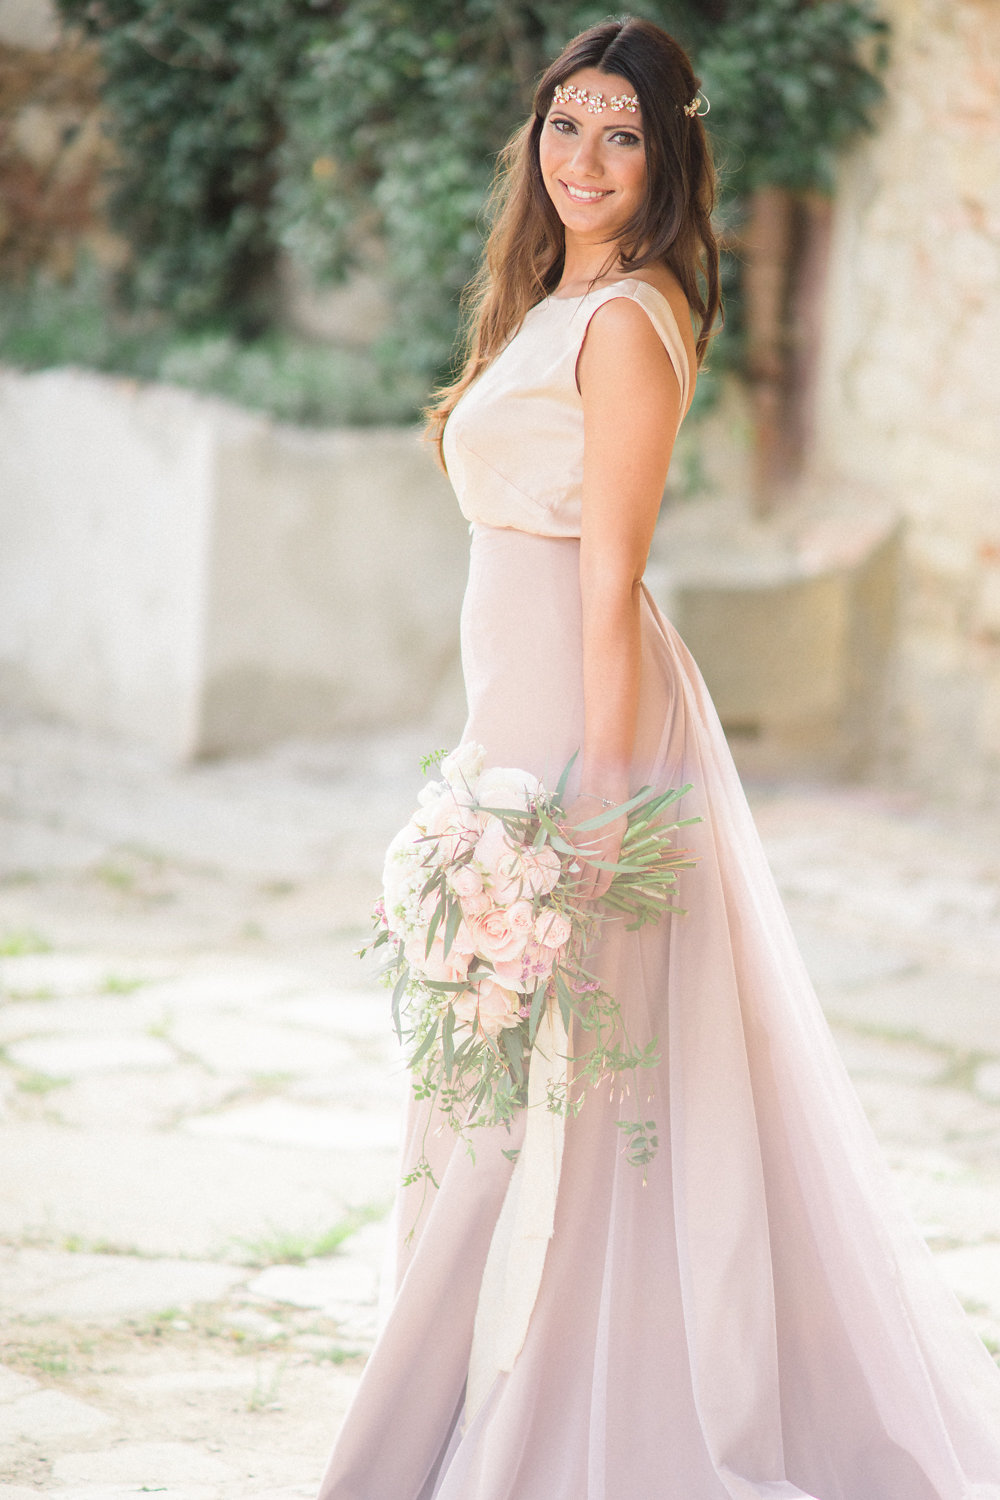 Tuscany Italy Wedding Photographer Roberta Facchini 48